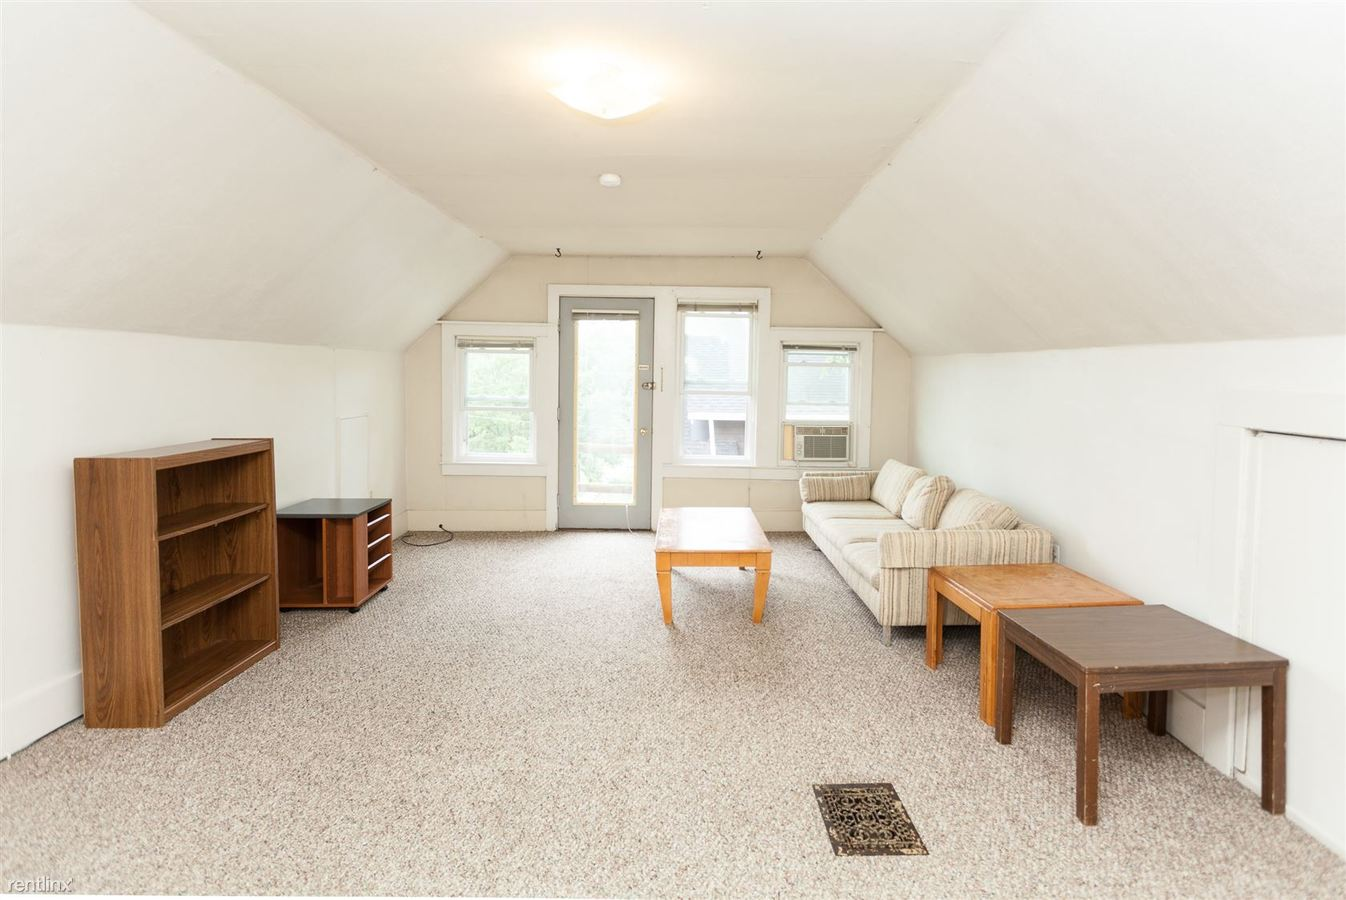 2 Bedrooms 1 Bathroom Apartment for rent at 1130 Oakland Ave in Ann Arbor, MI